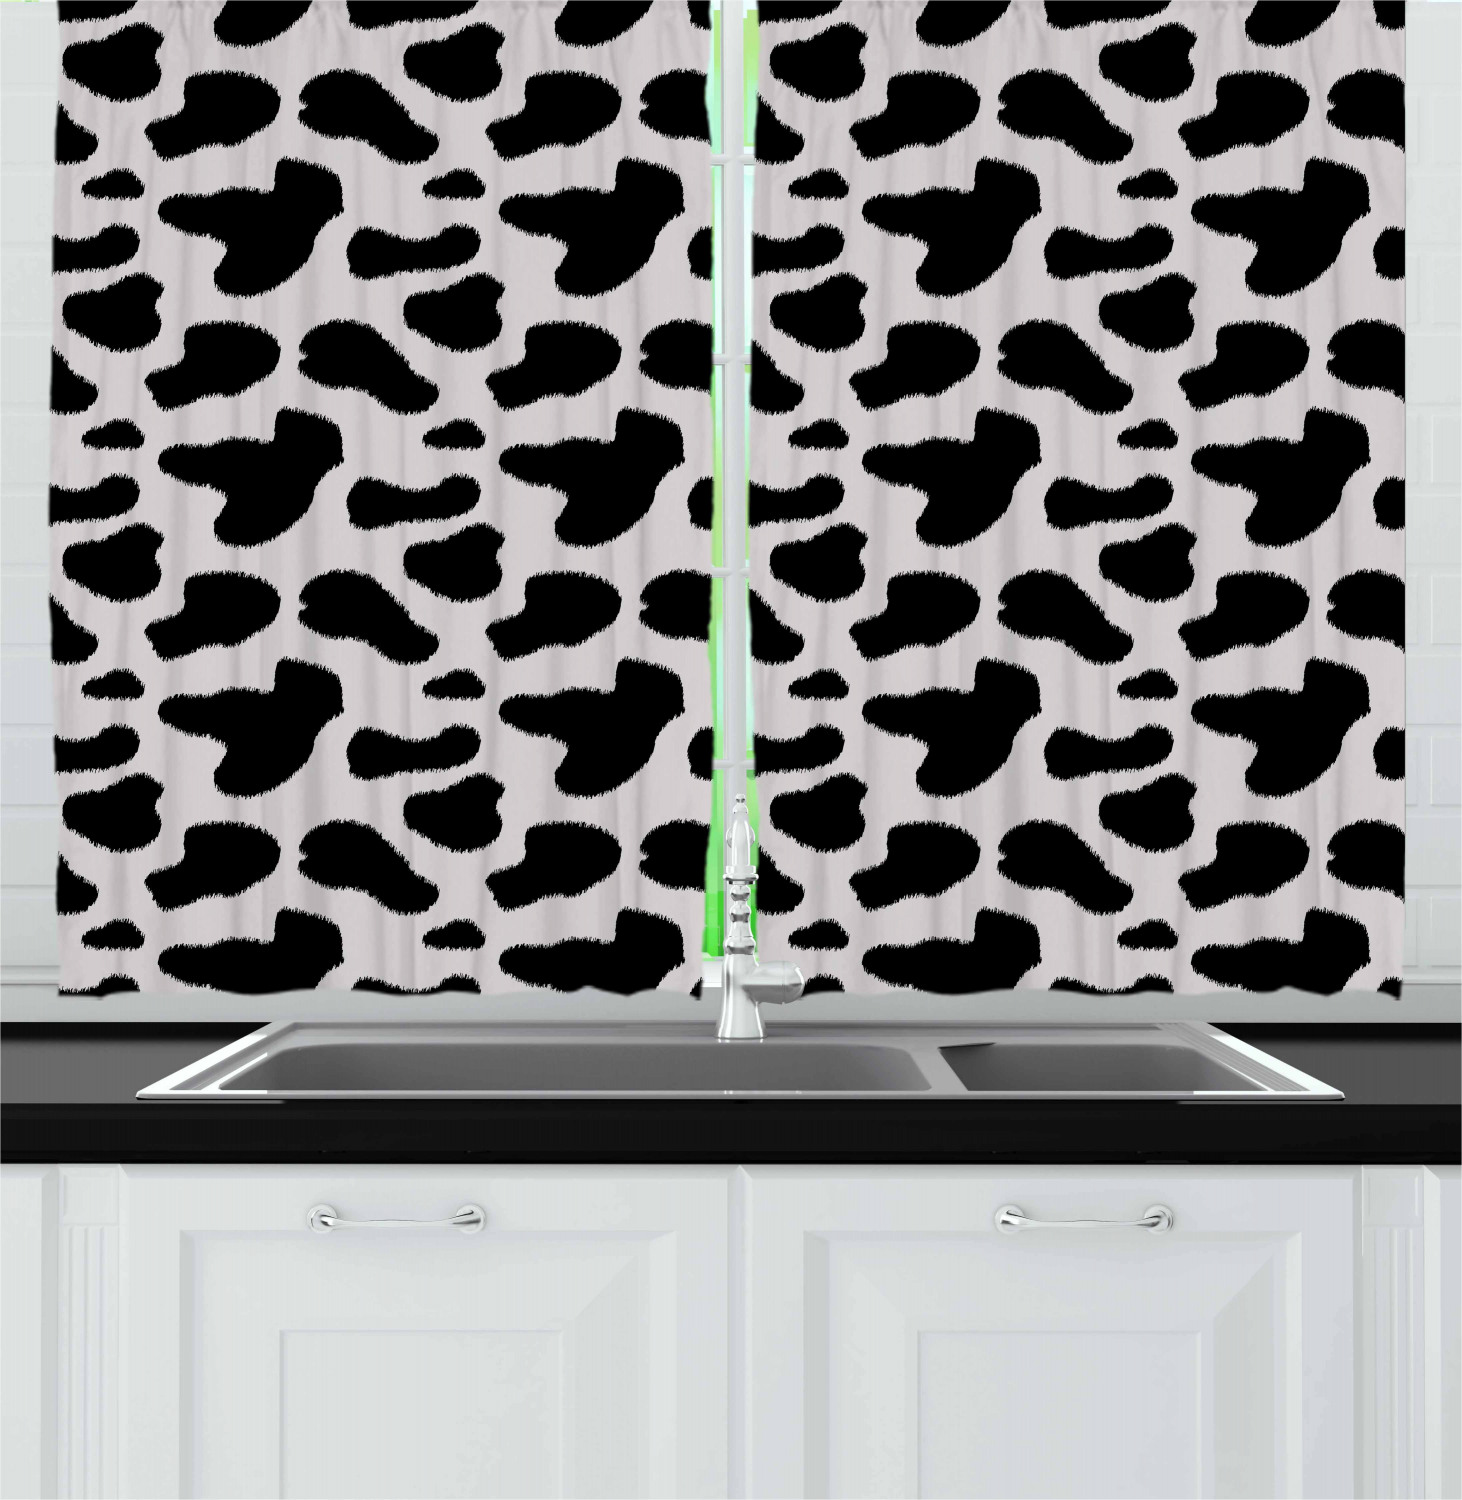 Cow Print Curtains 2 Panels Set Cow Hide Pattern With Black Spots Farm Life With Cattle Camouflage Animal Skin Window Drapes For Living Room Bedroom 55w X 39l Inches White Black By